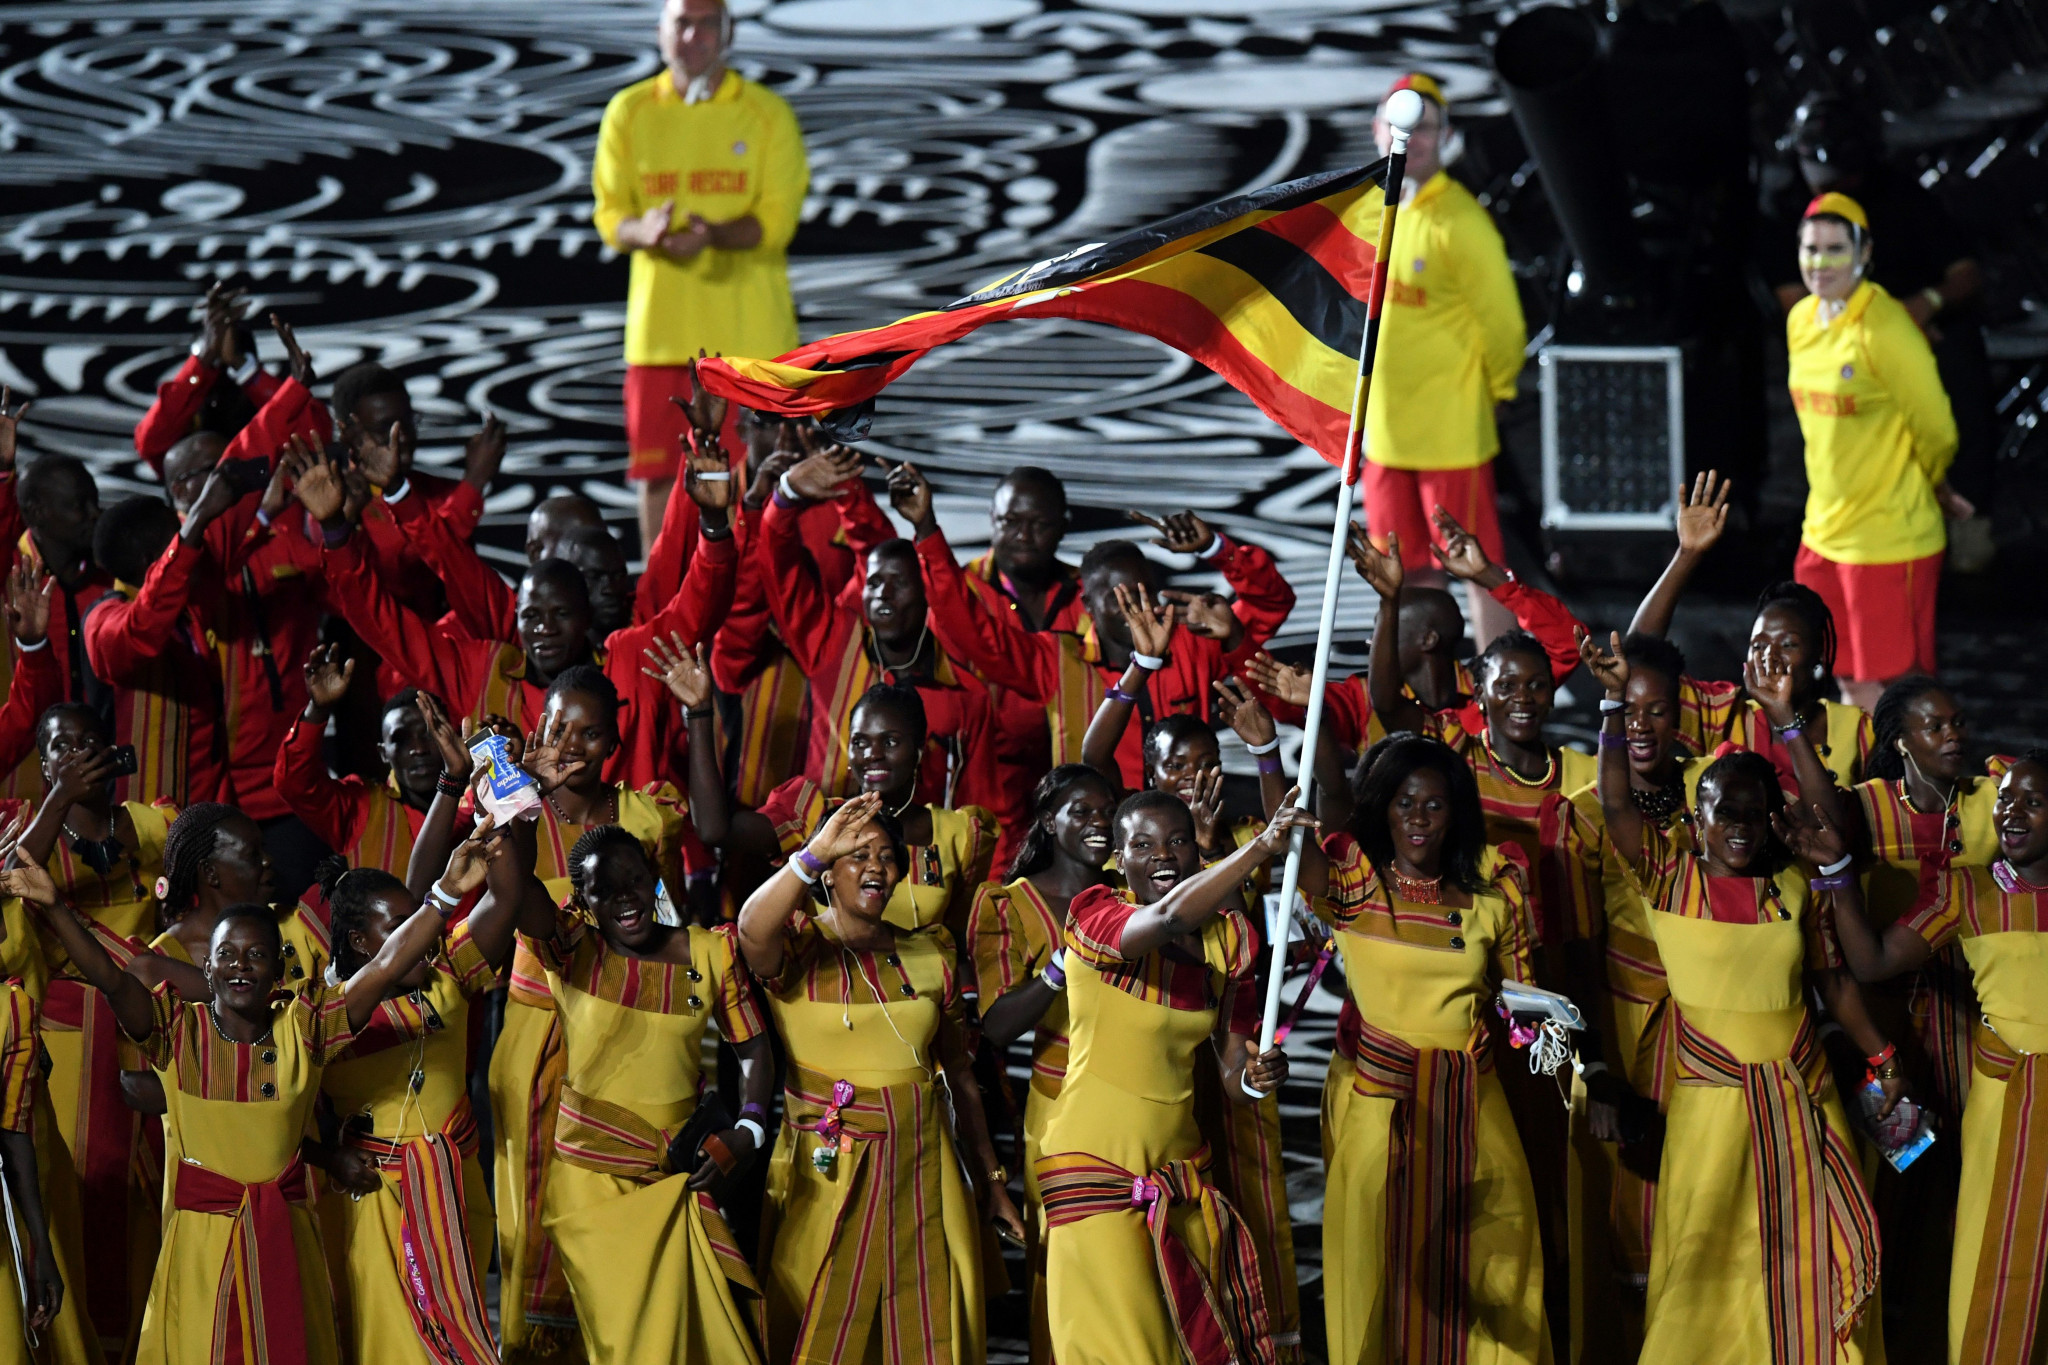 Australia set to deport two Ugandan athletes who stayed in country after Gold Coast 2018